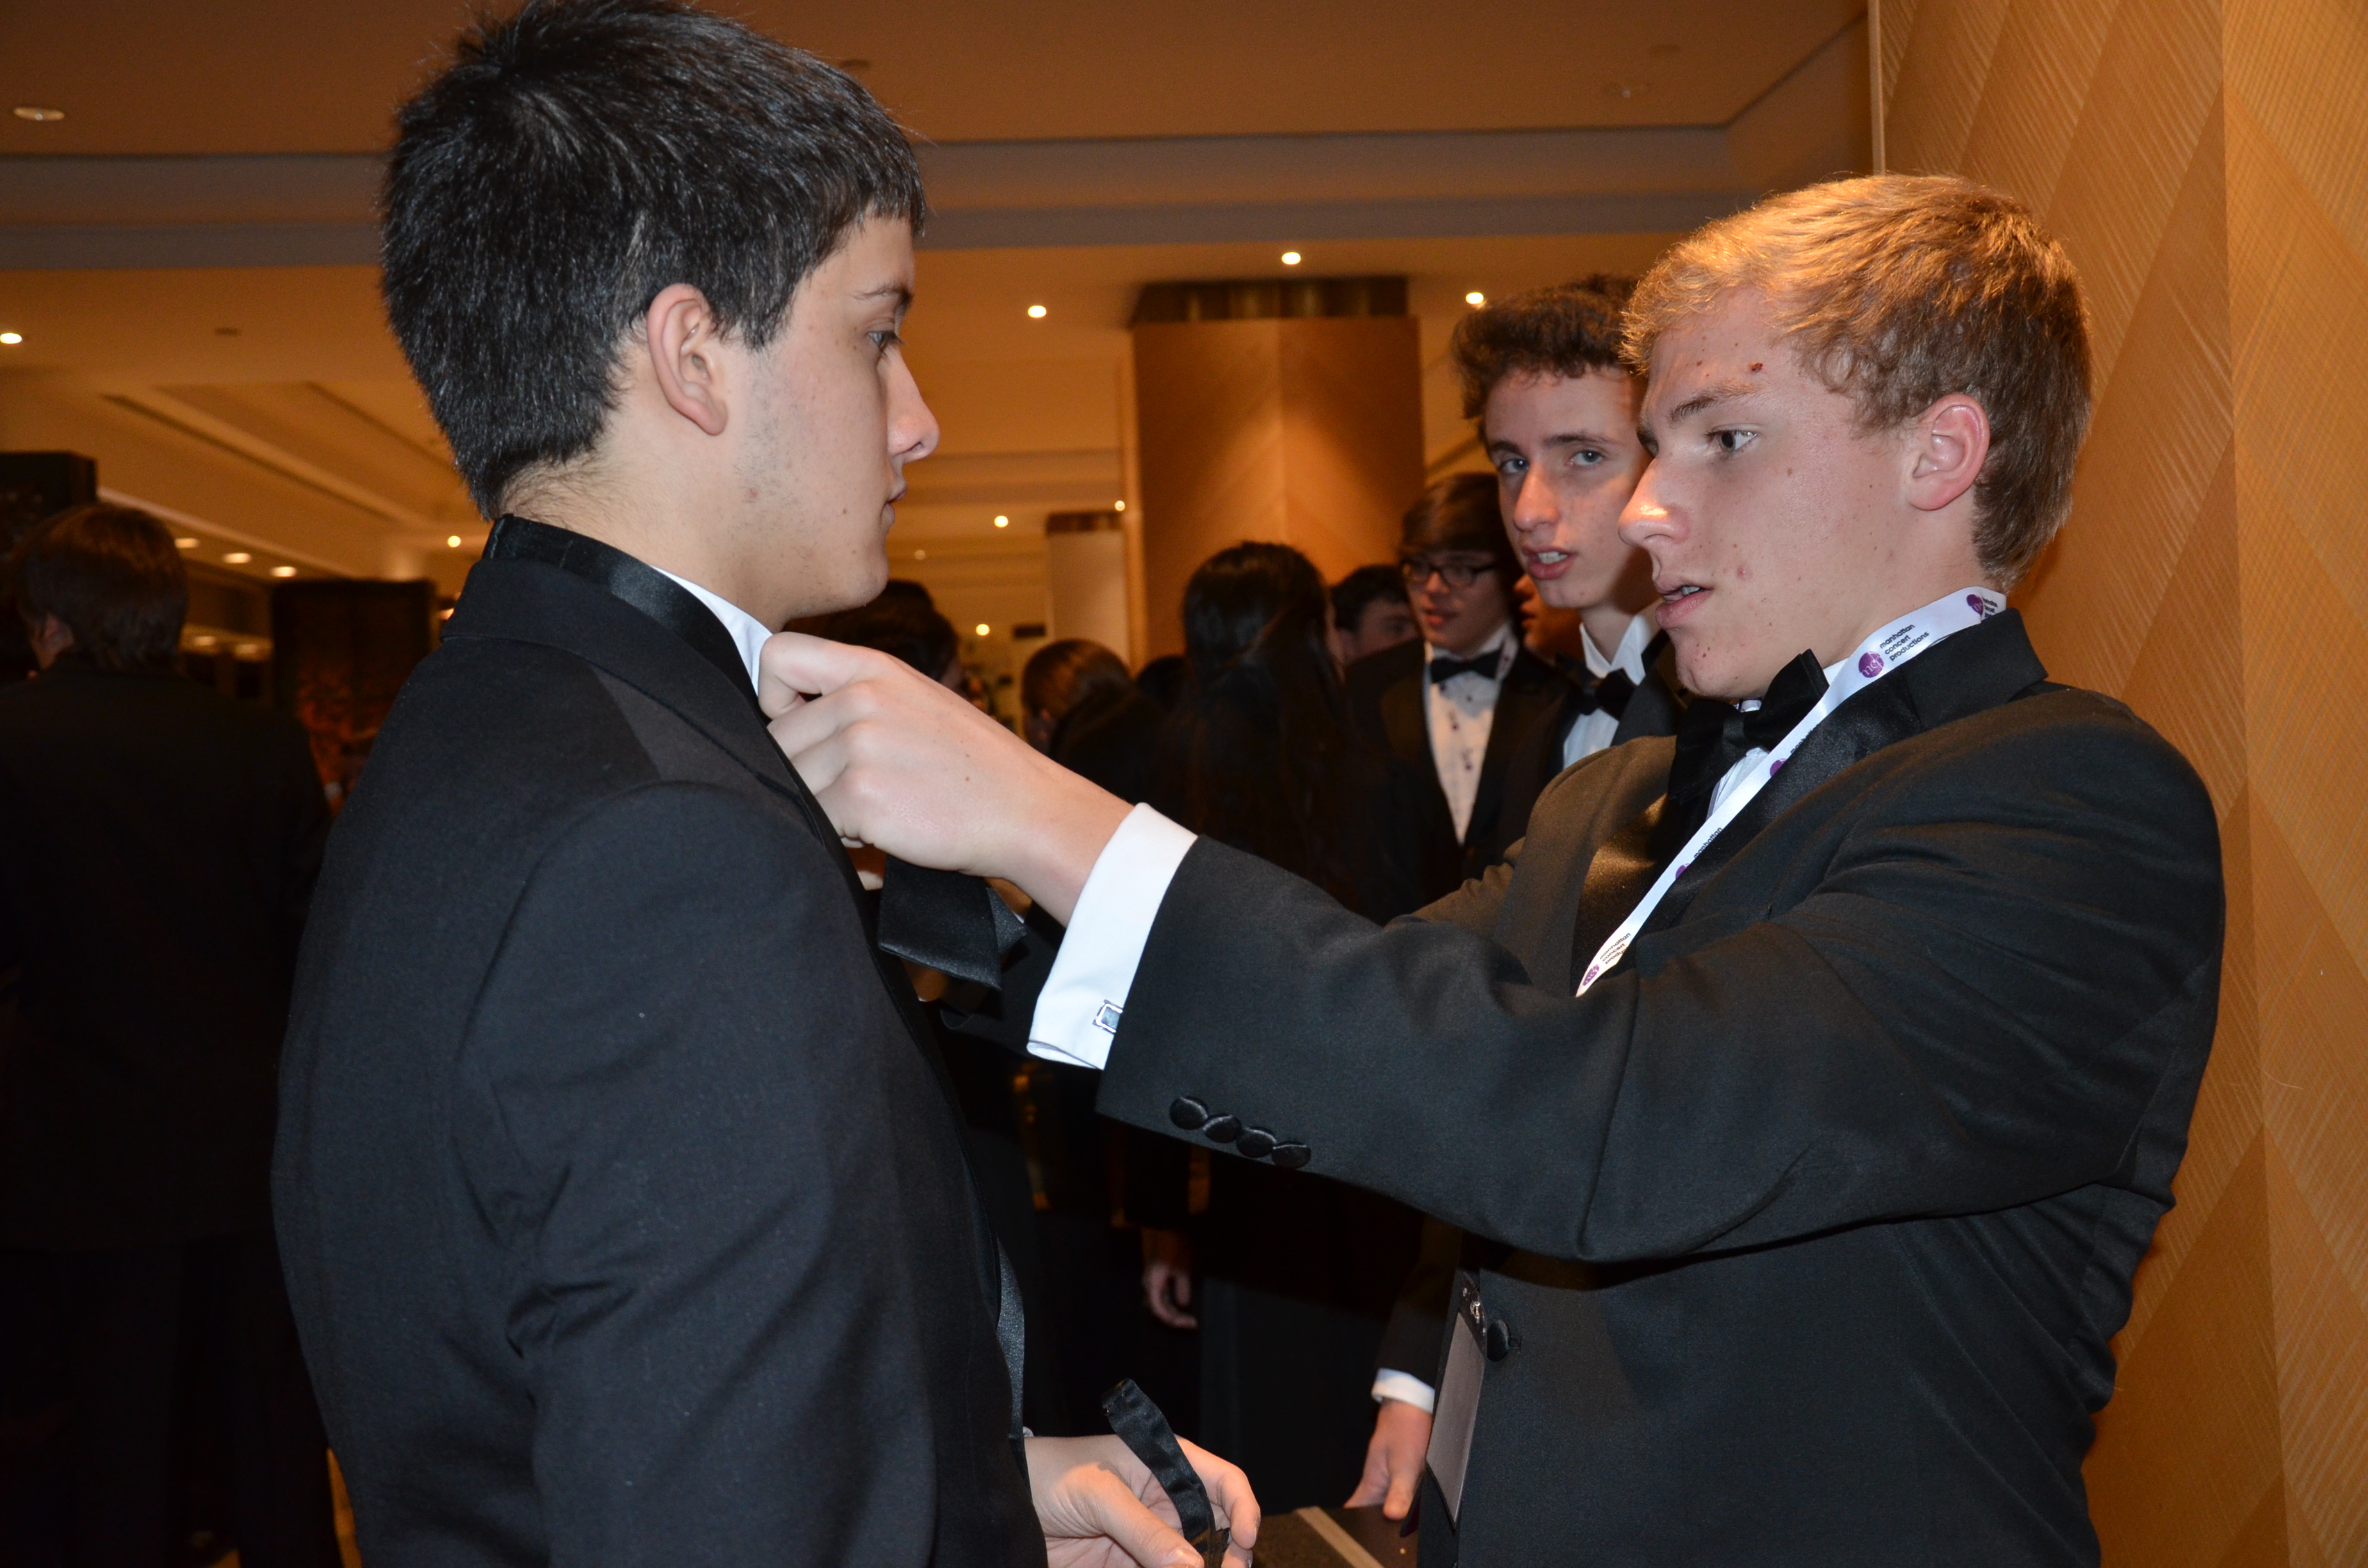 Drew Eudy adjusts the tie of Seth Alexander before the performance at Carnegie Hall [PHOTO BY ROBIN REED]